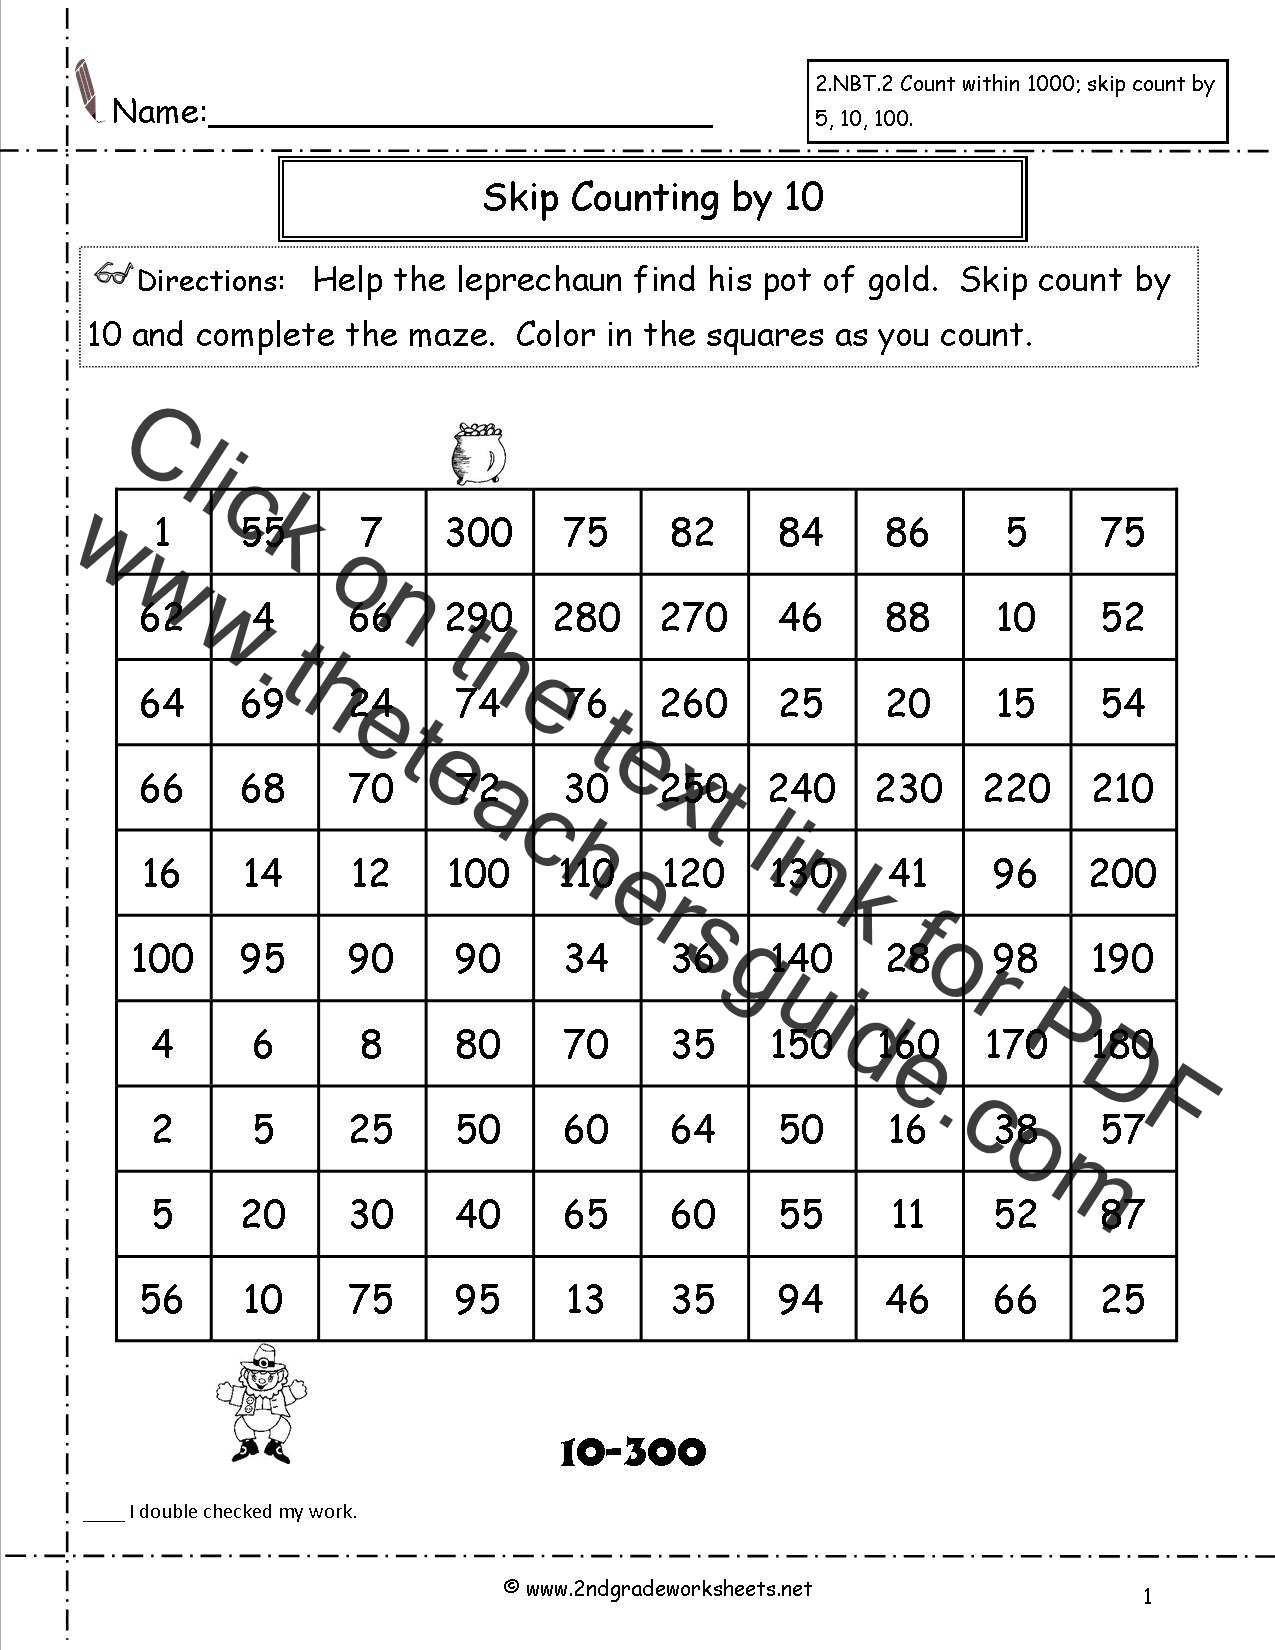 Skip counting by 2s up to 100 worksheets